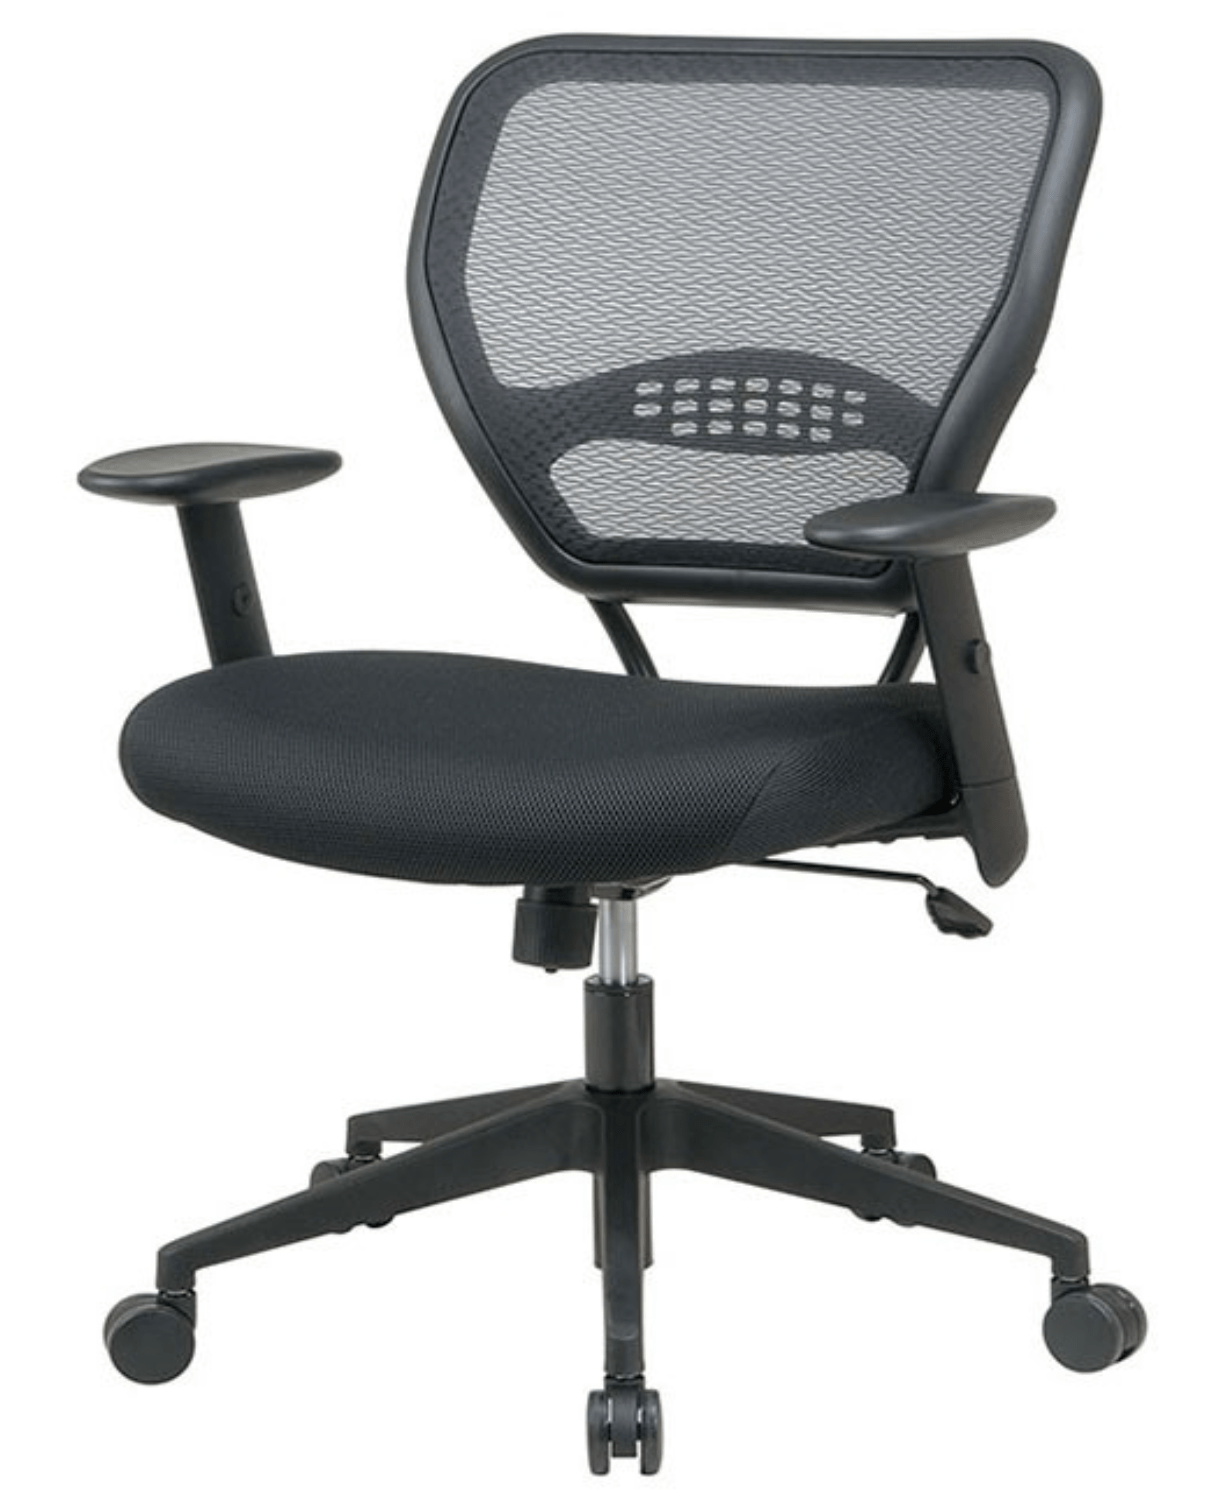 Workpro Commercial Mesh Back Executive Chair Black Professional Mesh Office Chair Office Star Mesh Office